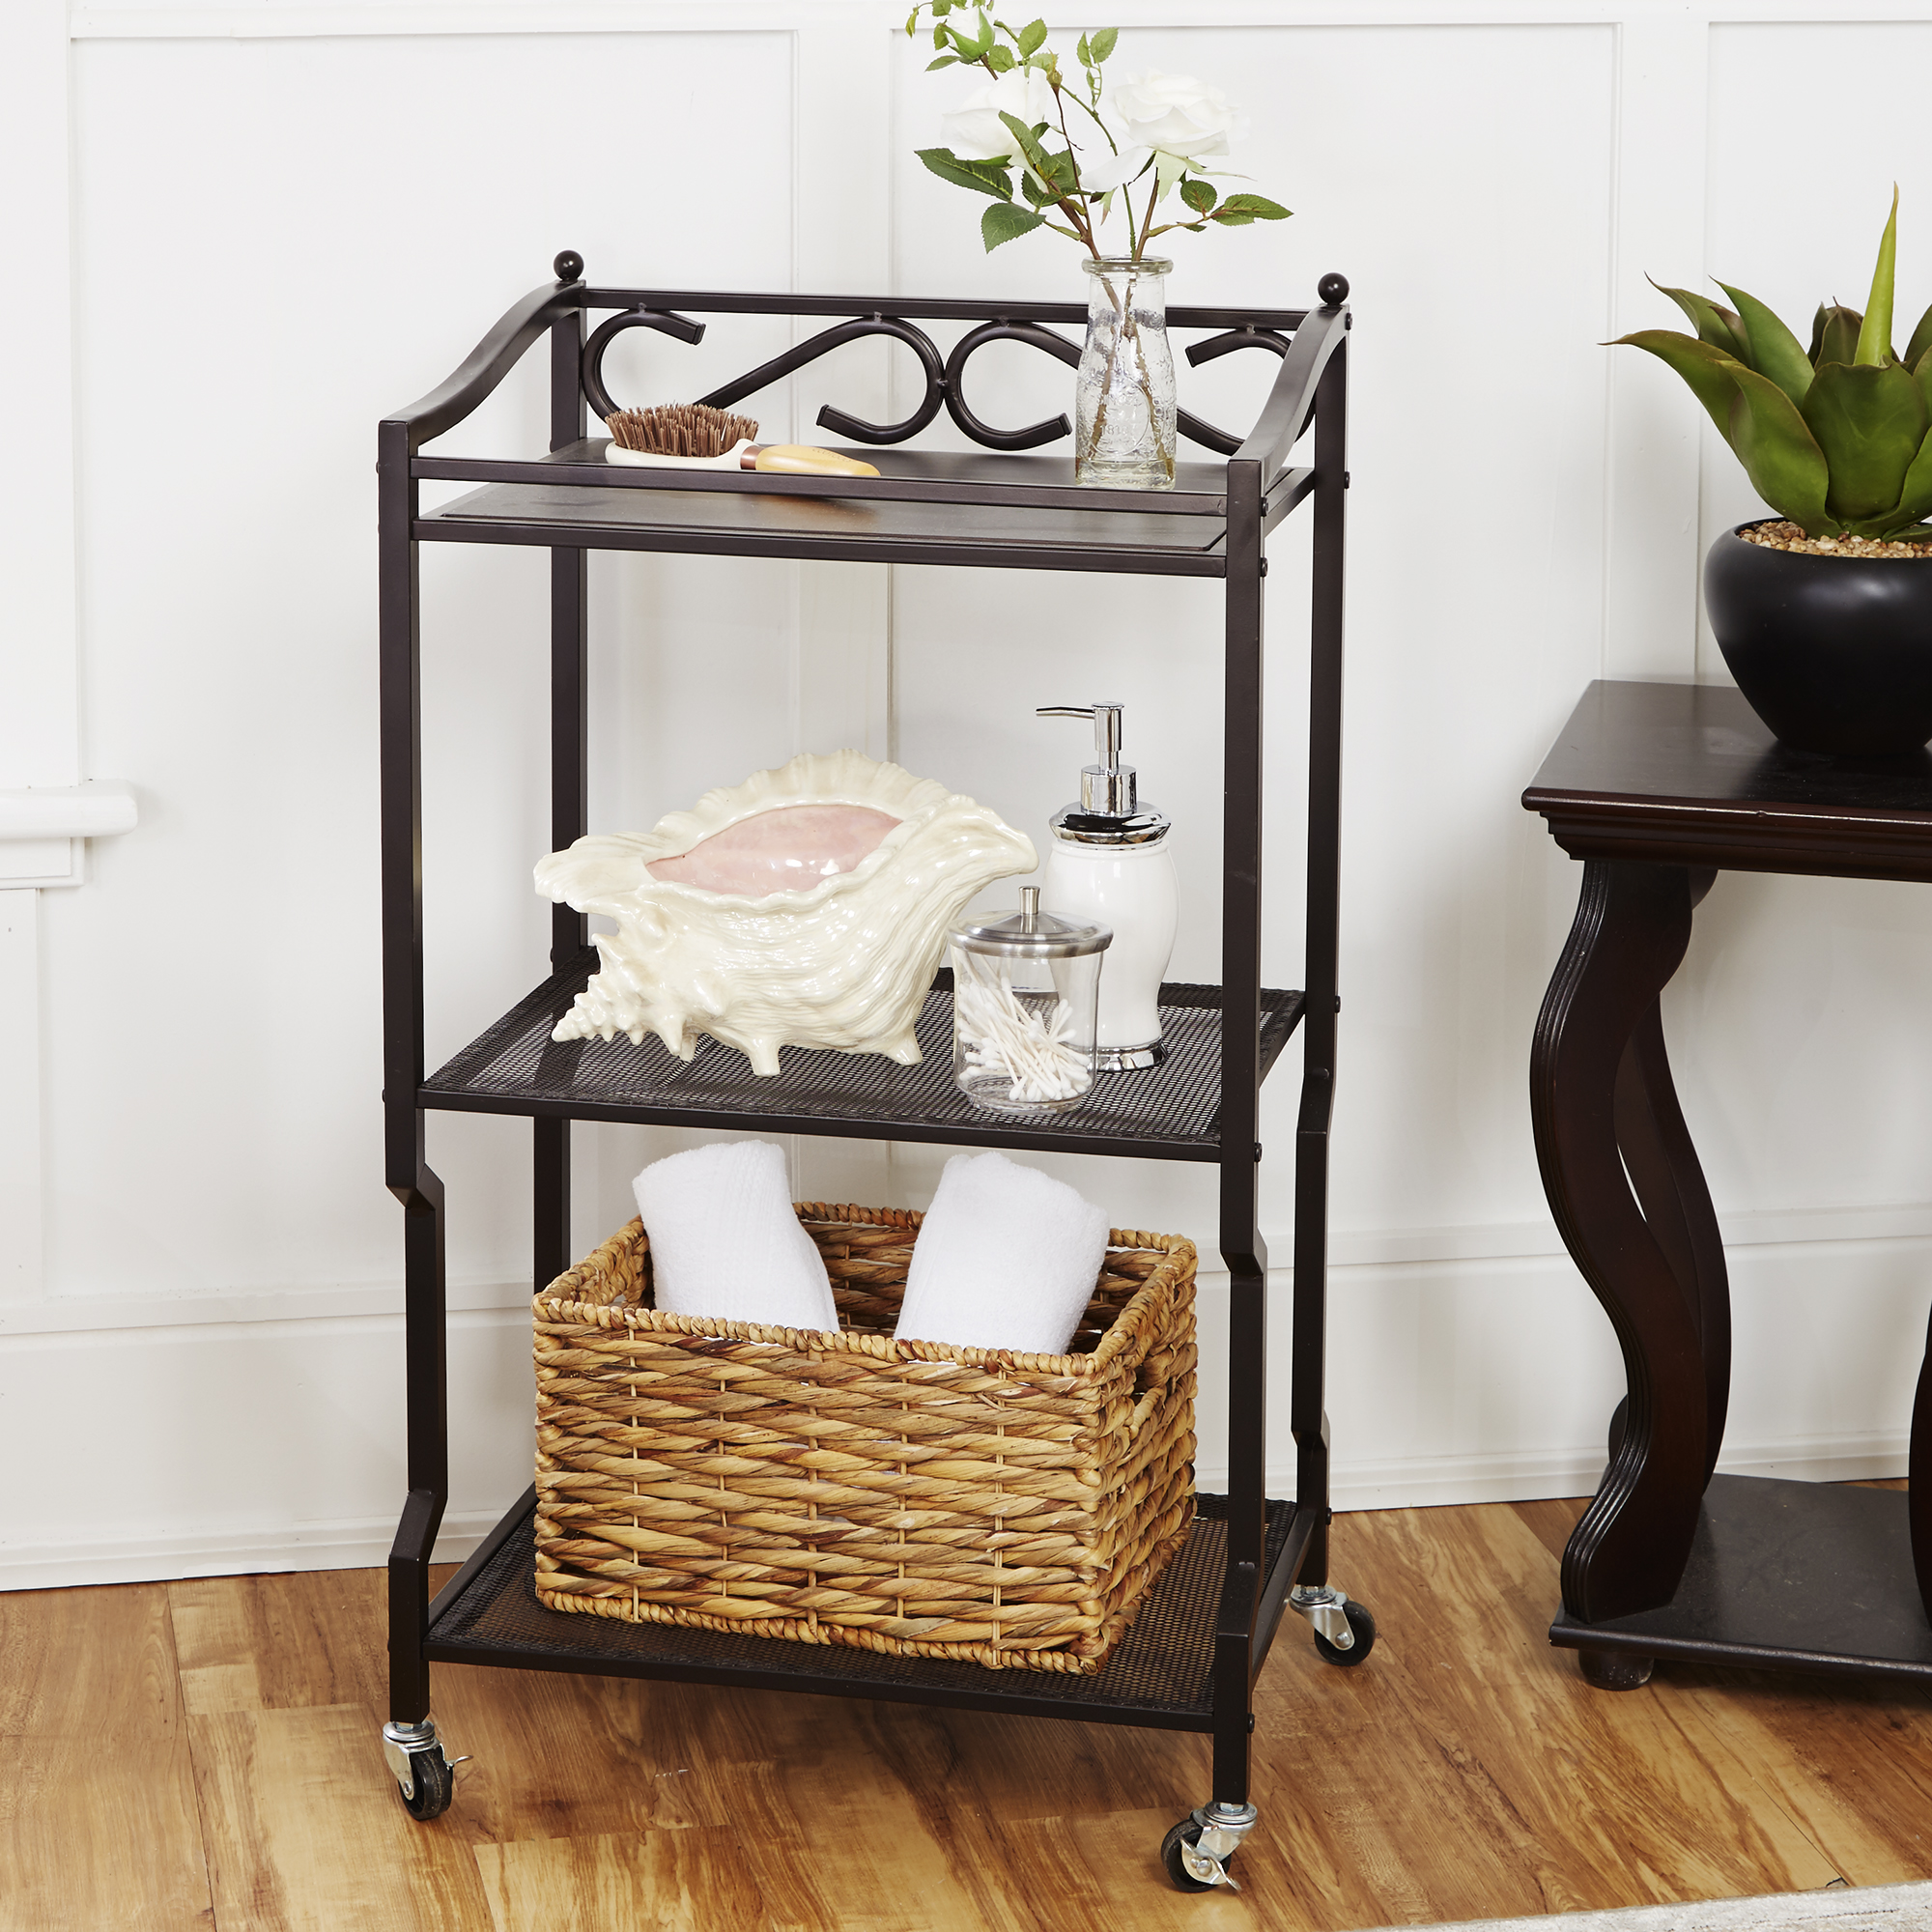 Chapter 3 Shelf Bathroom Storage Cart Oil Rubbed Bronze Finish